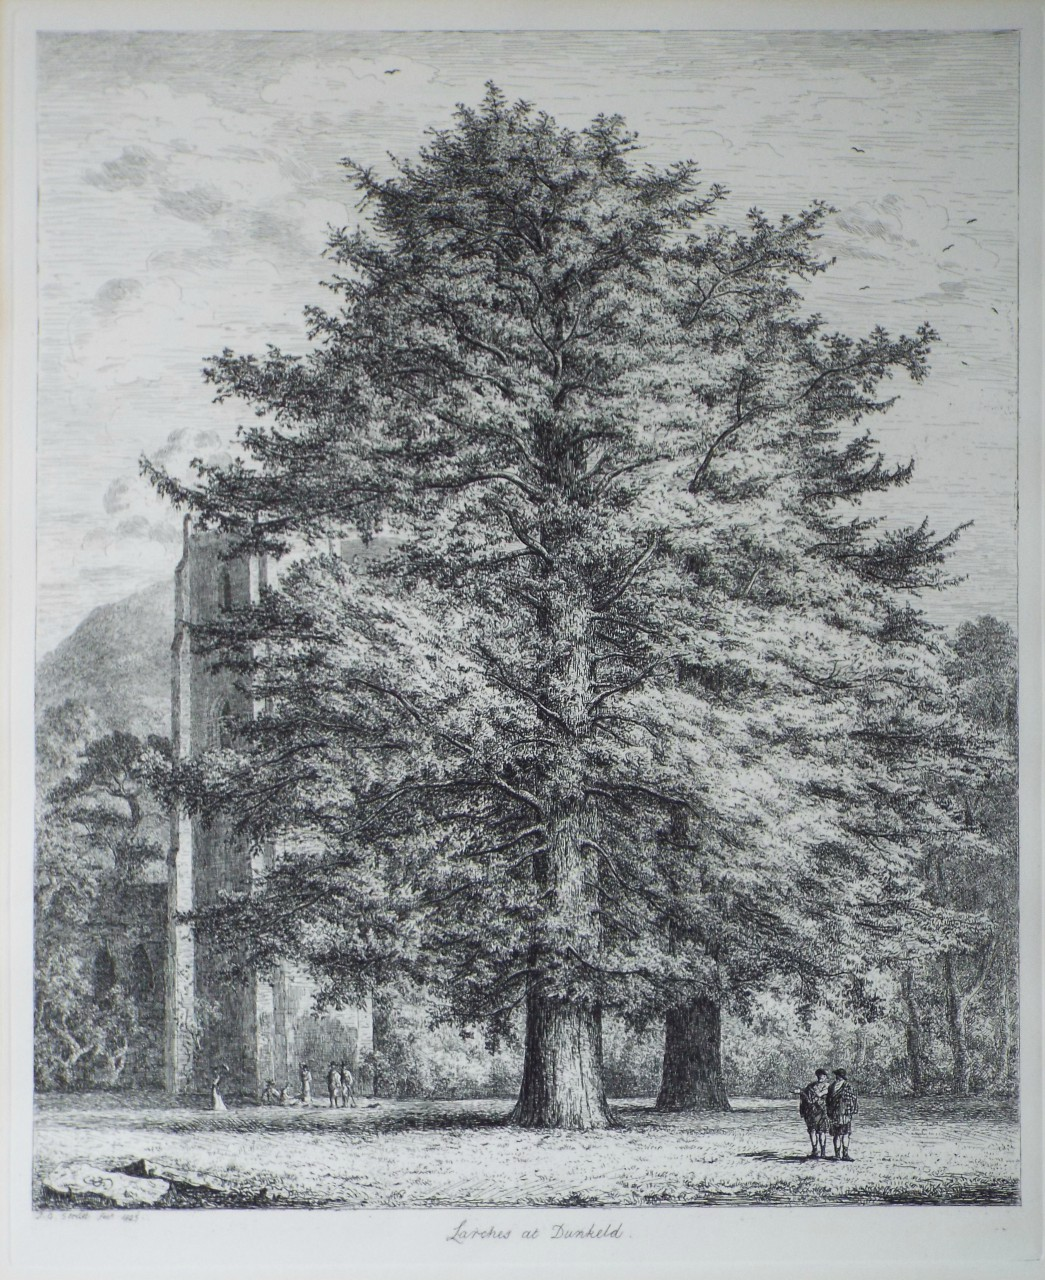 Lithograph - Larches at Dunkeld. - Strutt